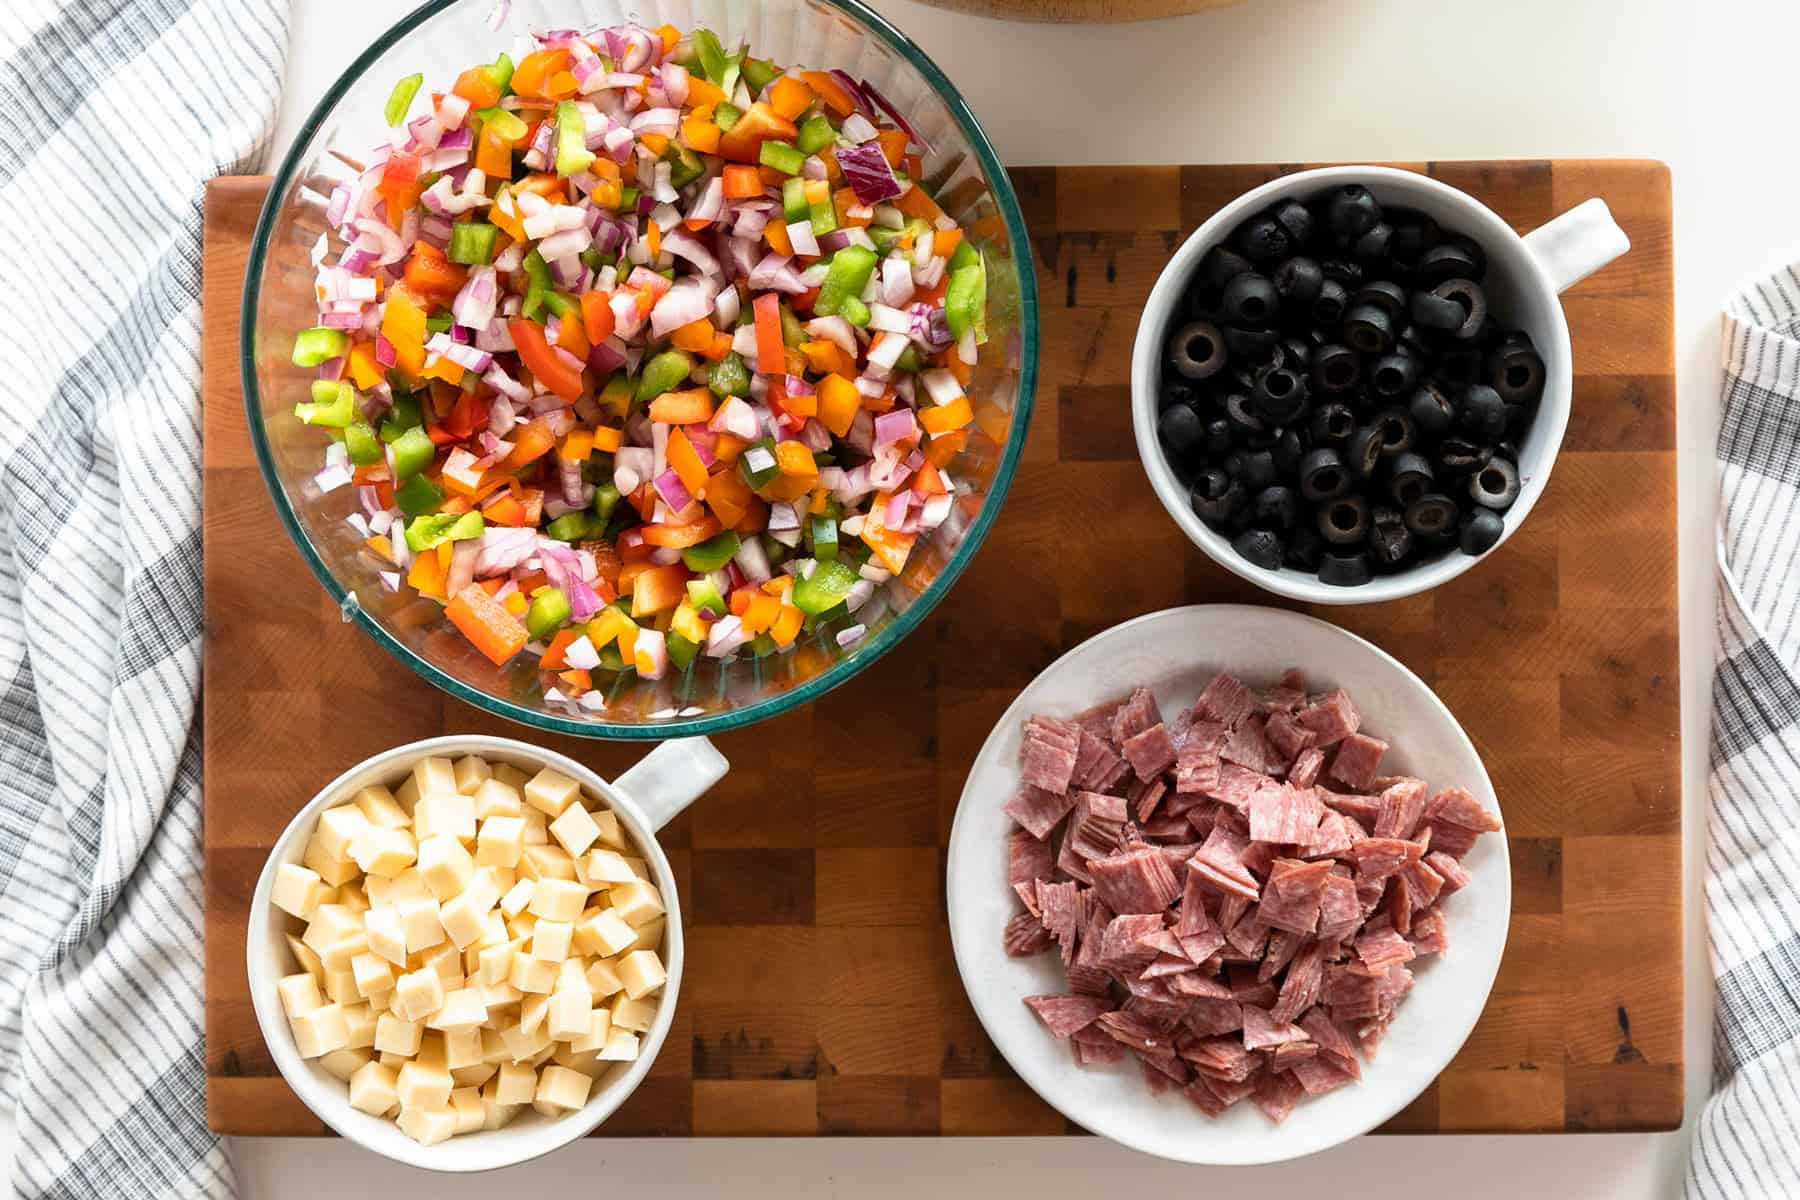 antipasto pasta salad prepped ingredients on a cutting board. diced bell peppers and red onion, sliced black olives, cubed provolone cheese, and salami cut in cubes